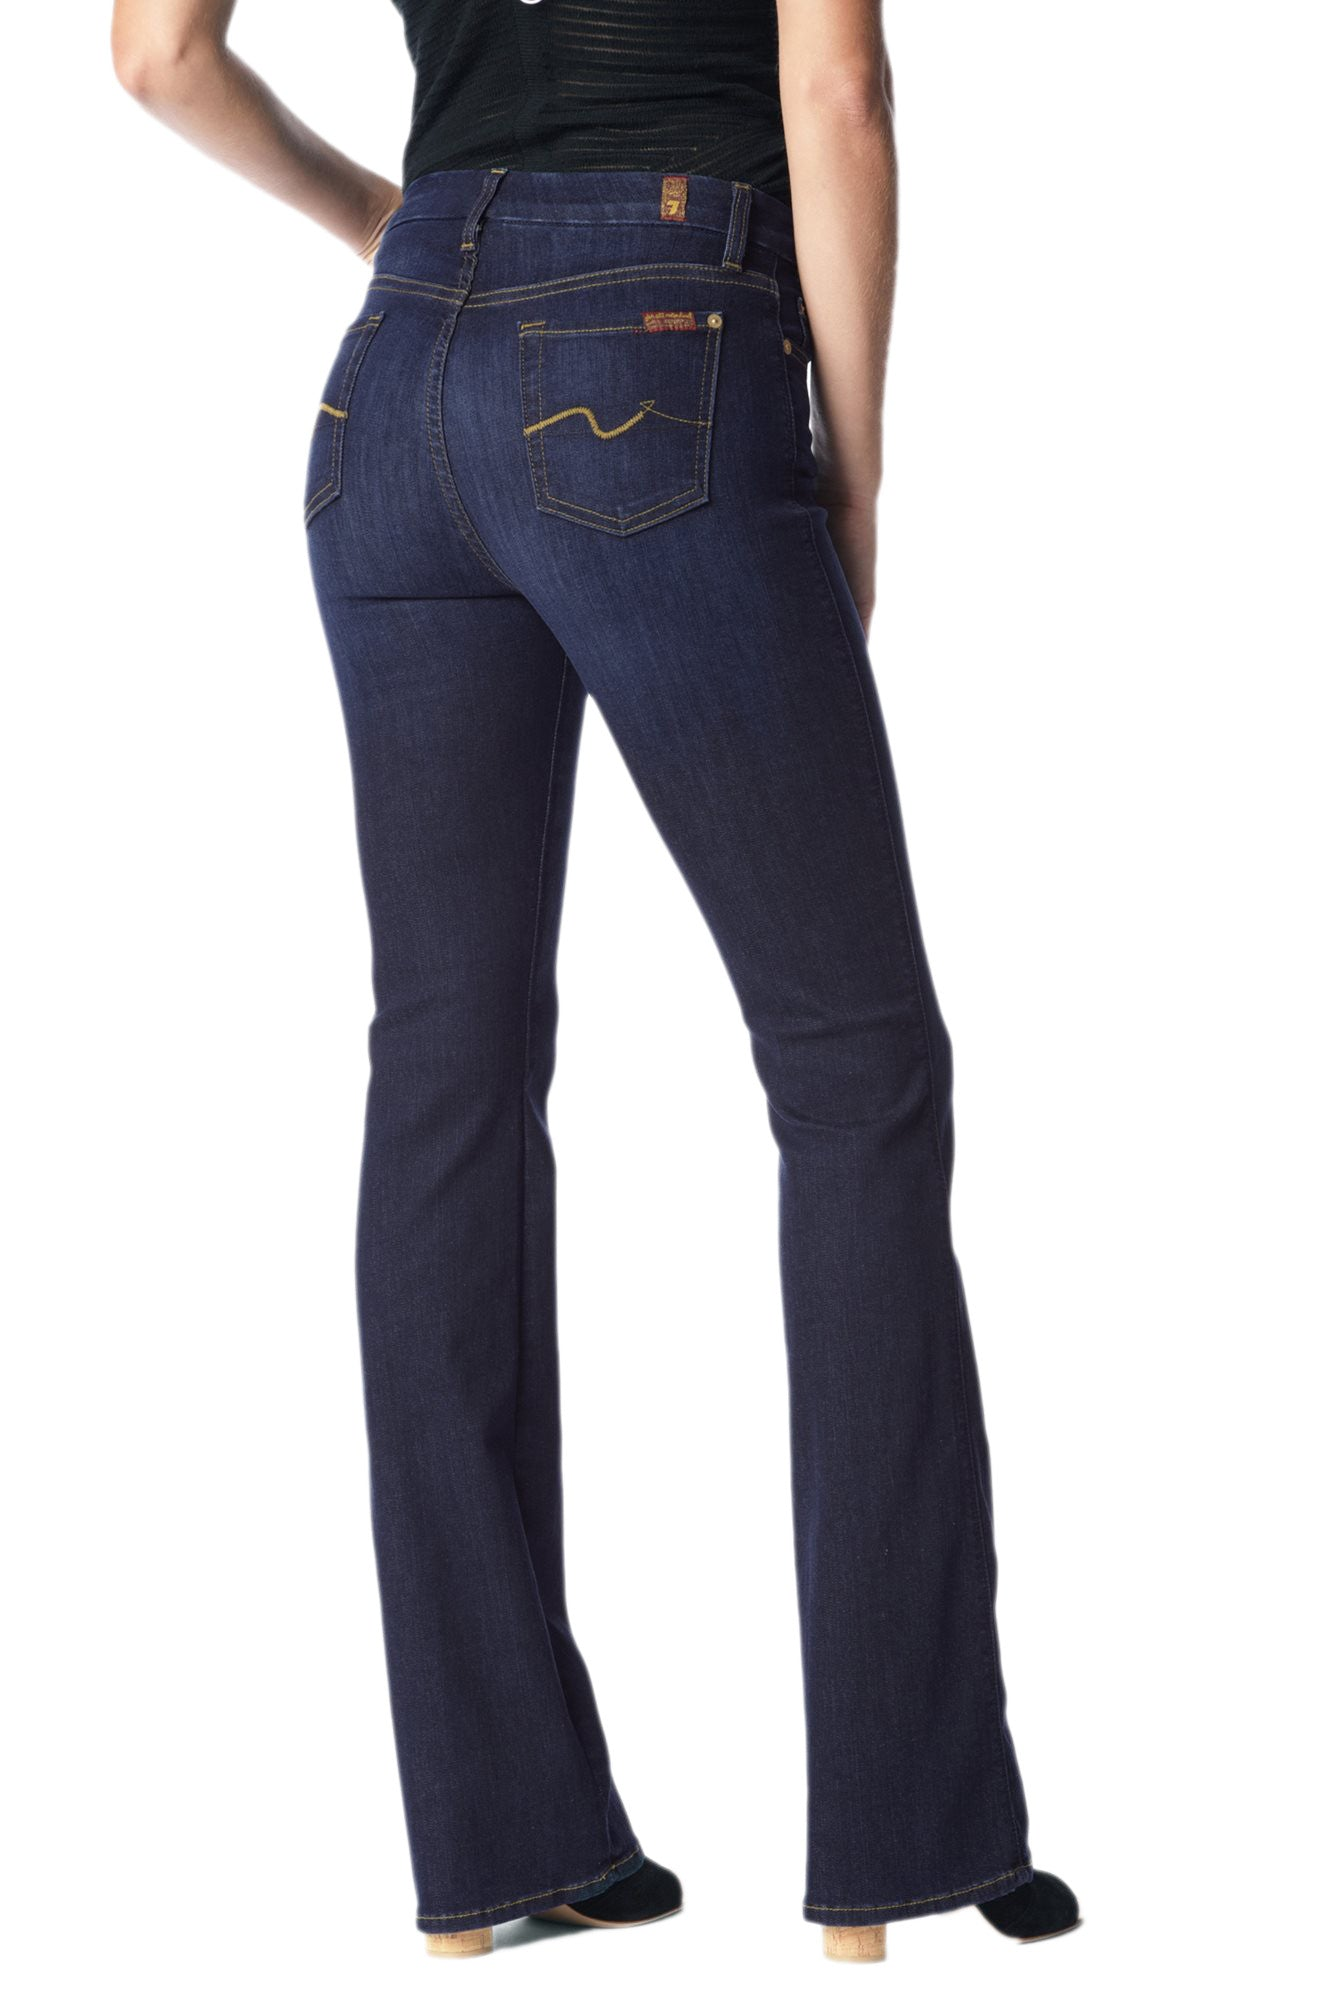 newest style of fashion style of 2019 good reputation 7 For All Mankind Slim Illusion Kimmie Bootcut Jean in Tried & True Blue  AU0156681A